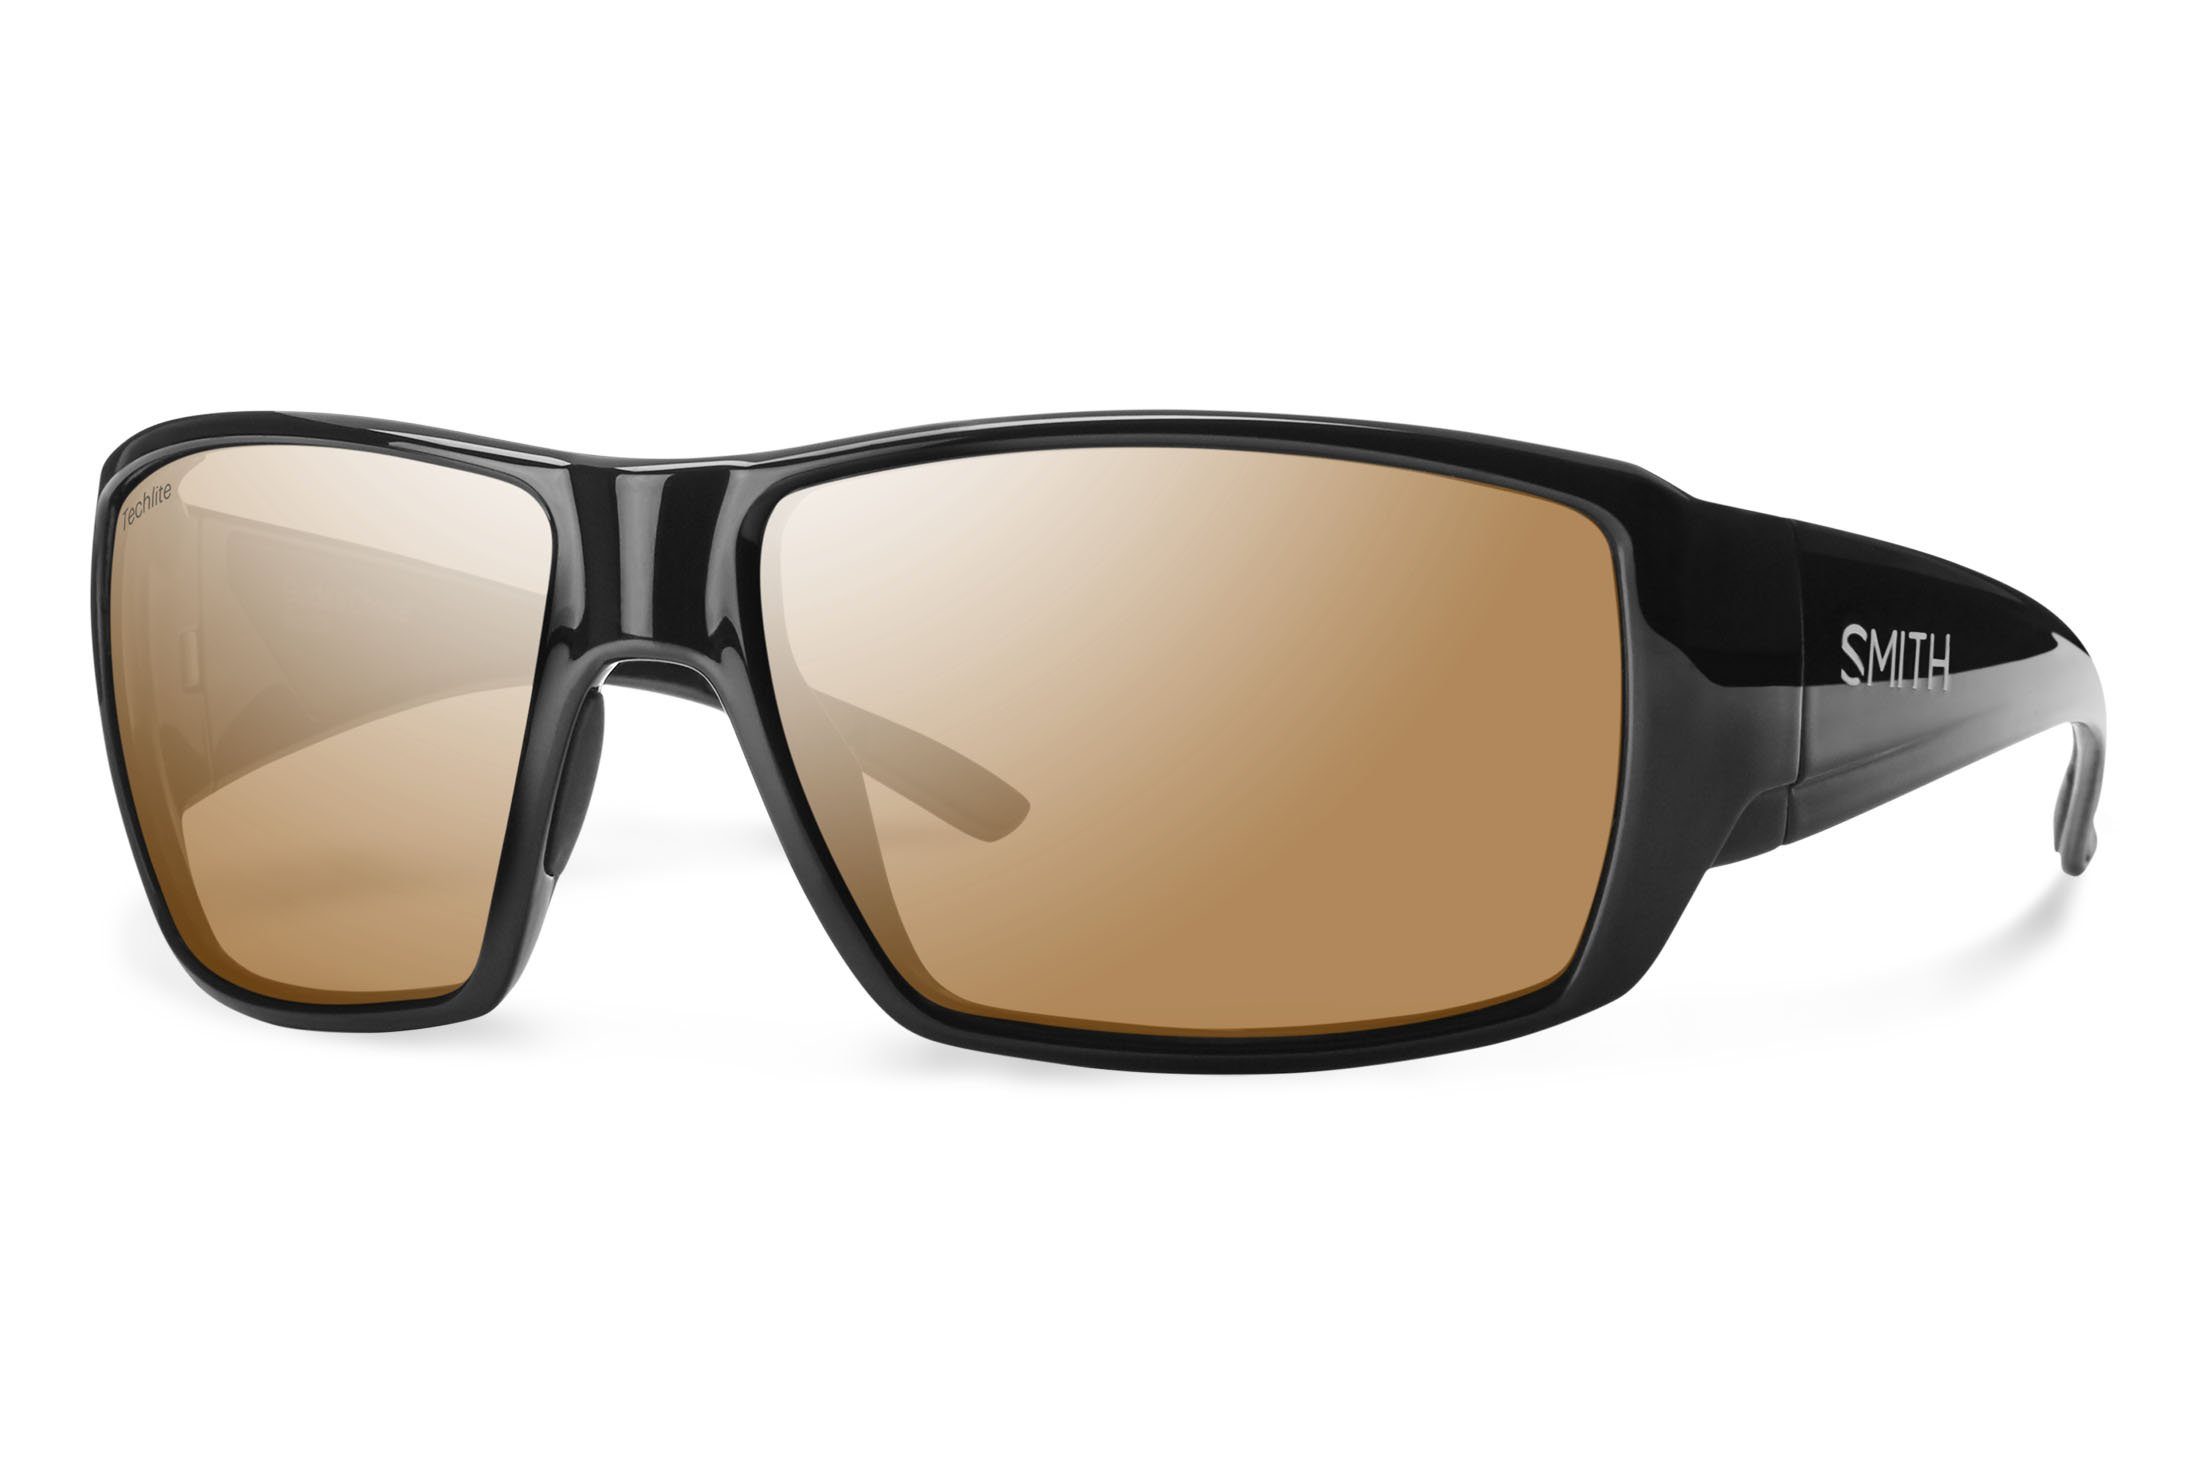 Smith Optics Guides Choice Sunglasses, Black Frame, Polarchromic Copper Mirror Techlite Glass Lenses by Smith Optics